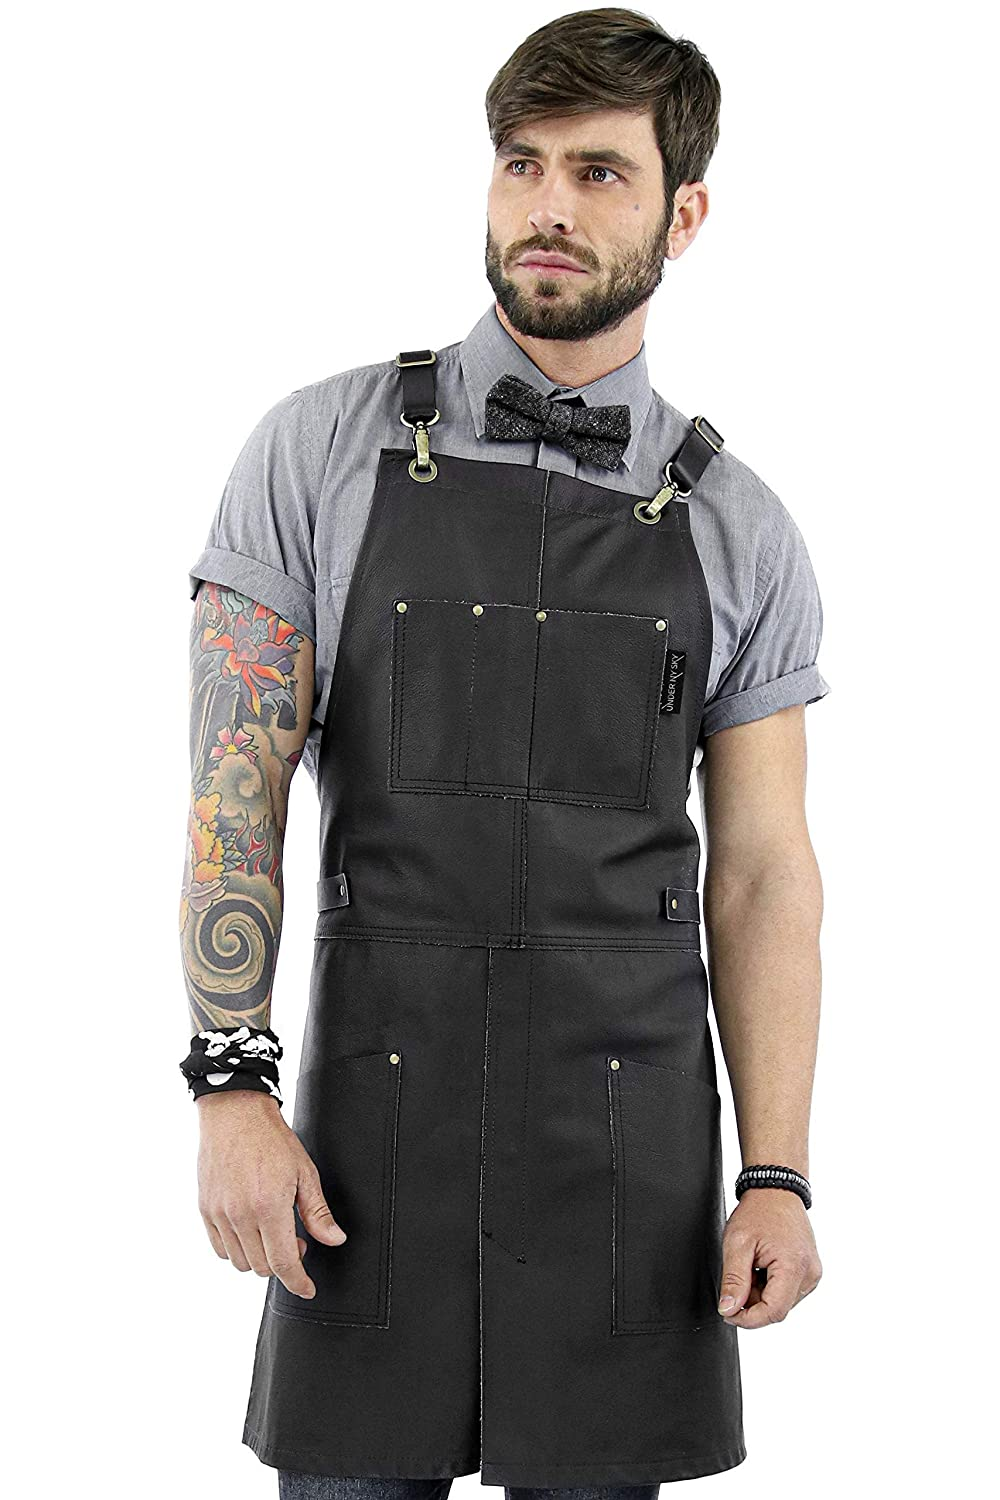 Real Leather Apron - Phoenix Tulsa Mall Mall Black and Pockets Body Crossback S